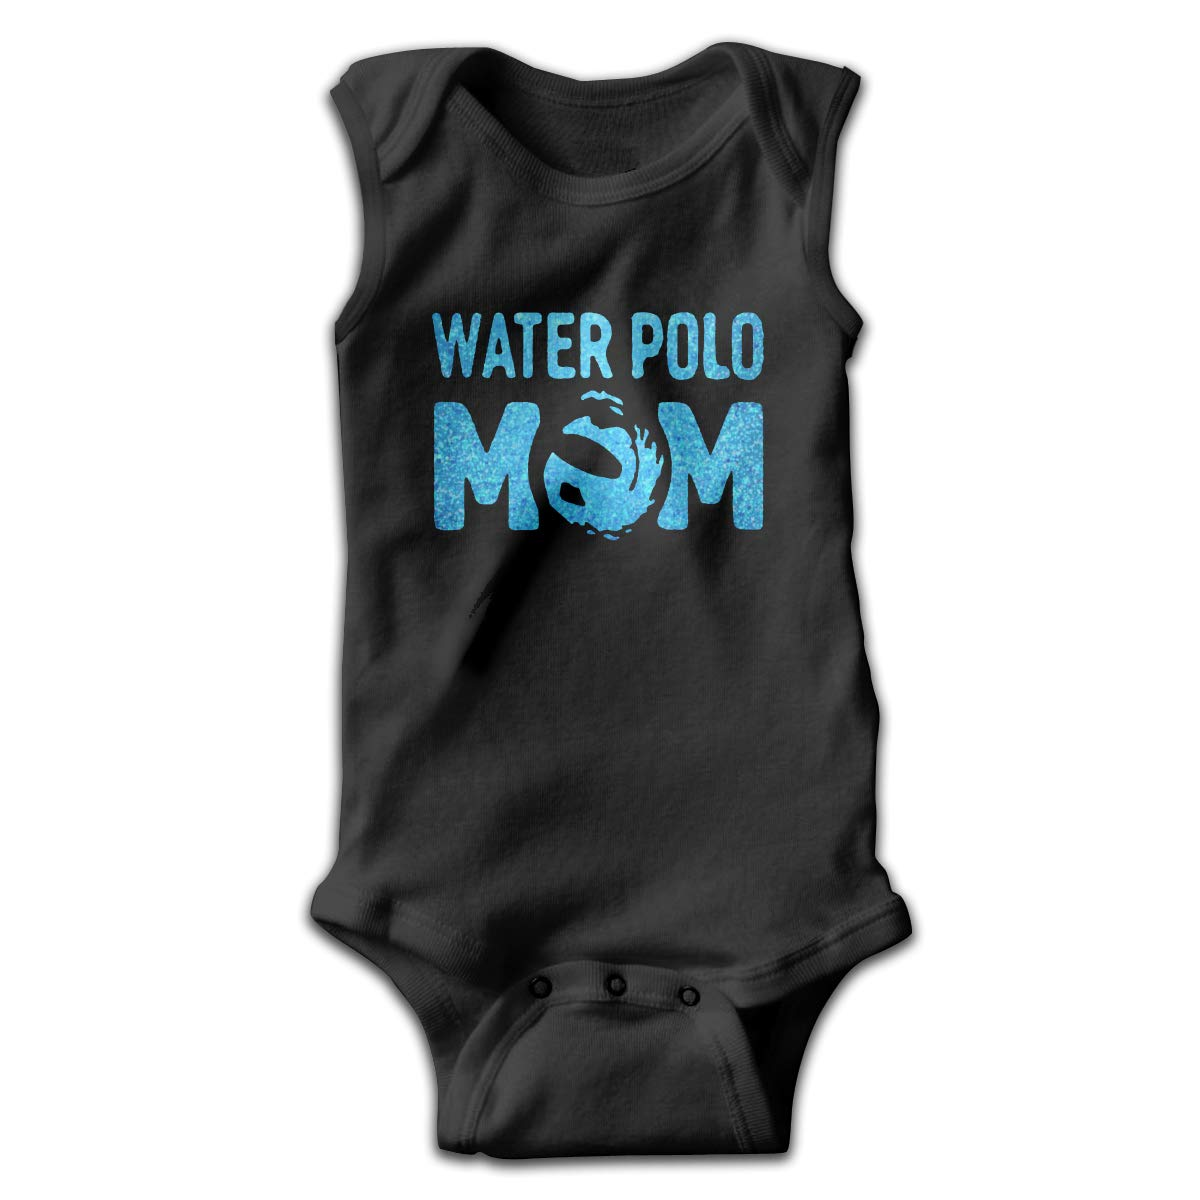 Dunpaiaa Blue Glitter Water Polo Mom Smalls Baby Onesie,Infant Bodysuit Black